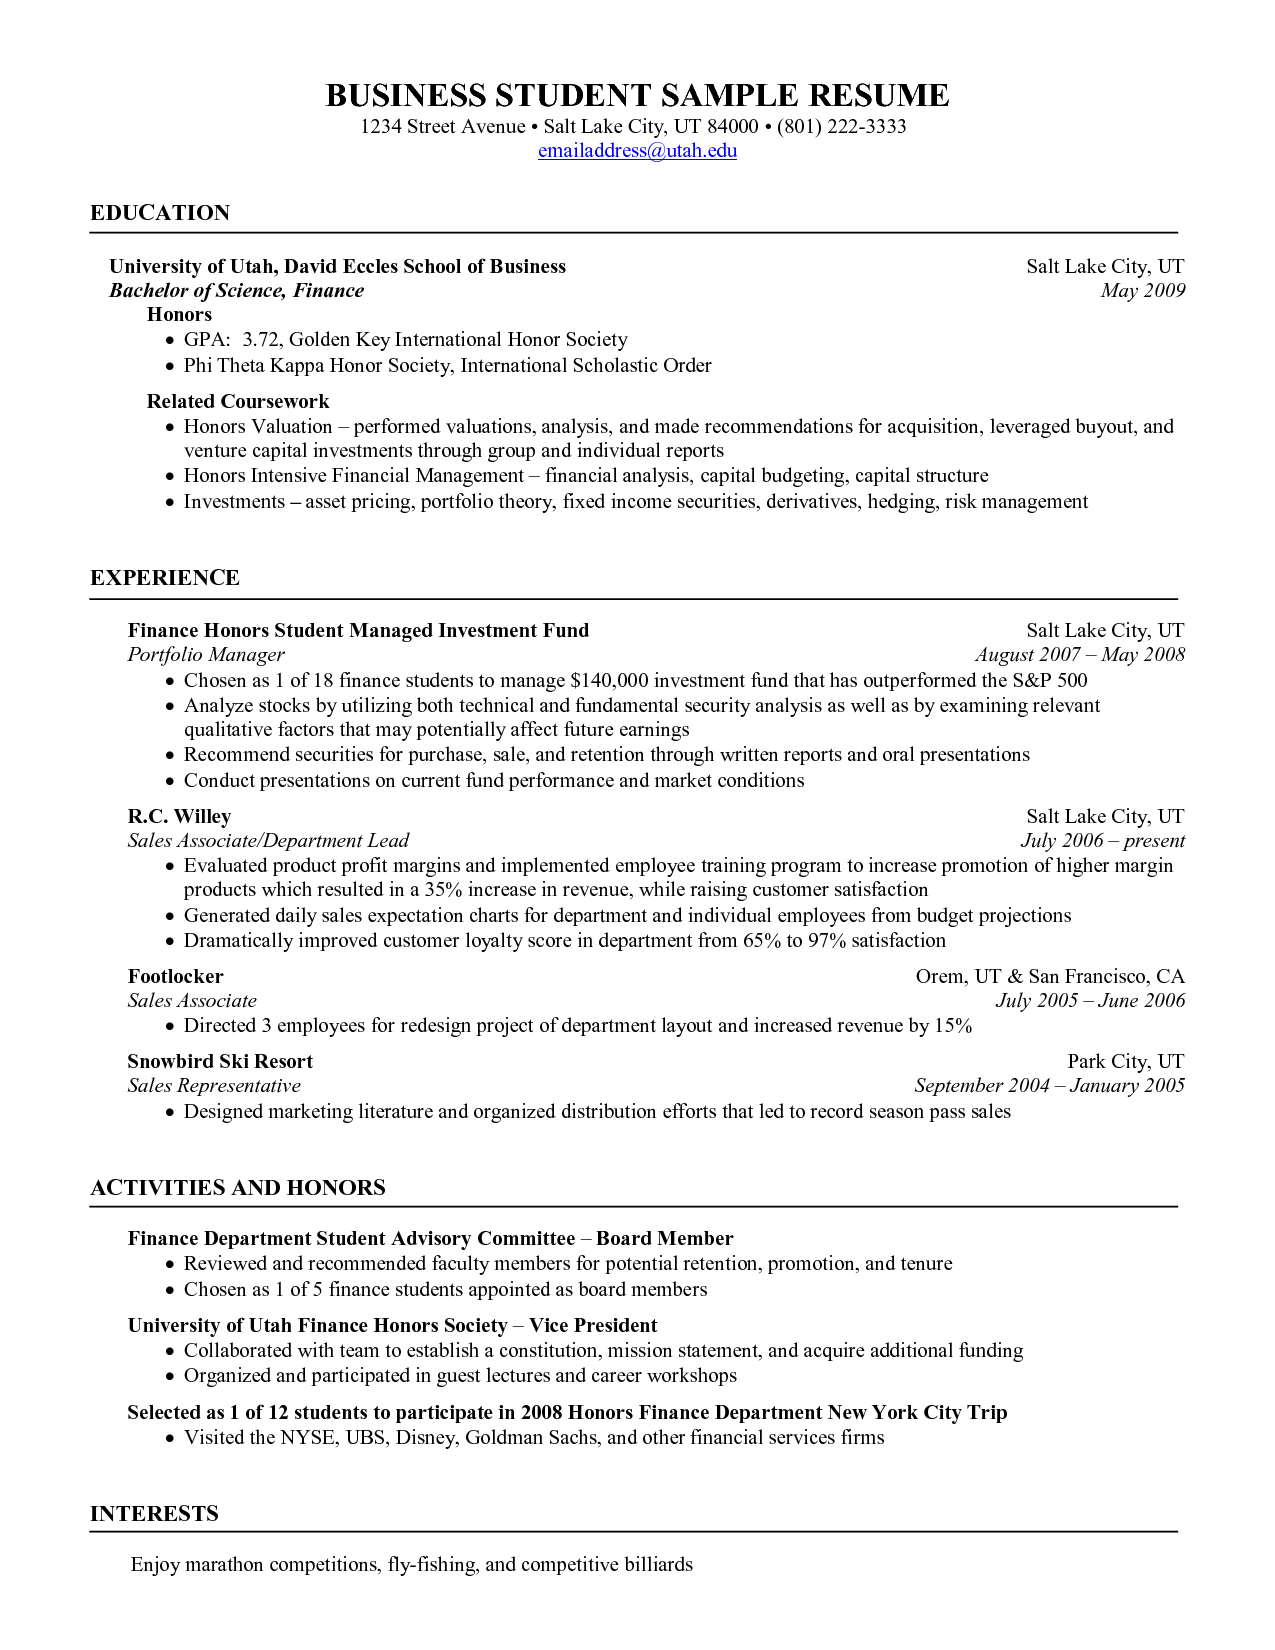 Example Of An Objective On A Resume Stockroom Manager Resume  Httpwwwresumecareerstockroom